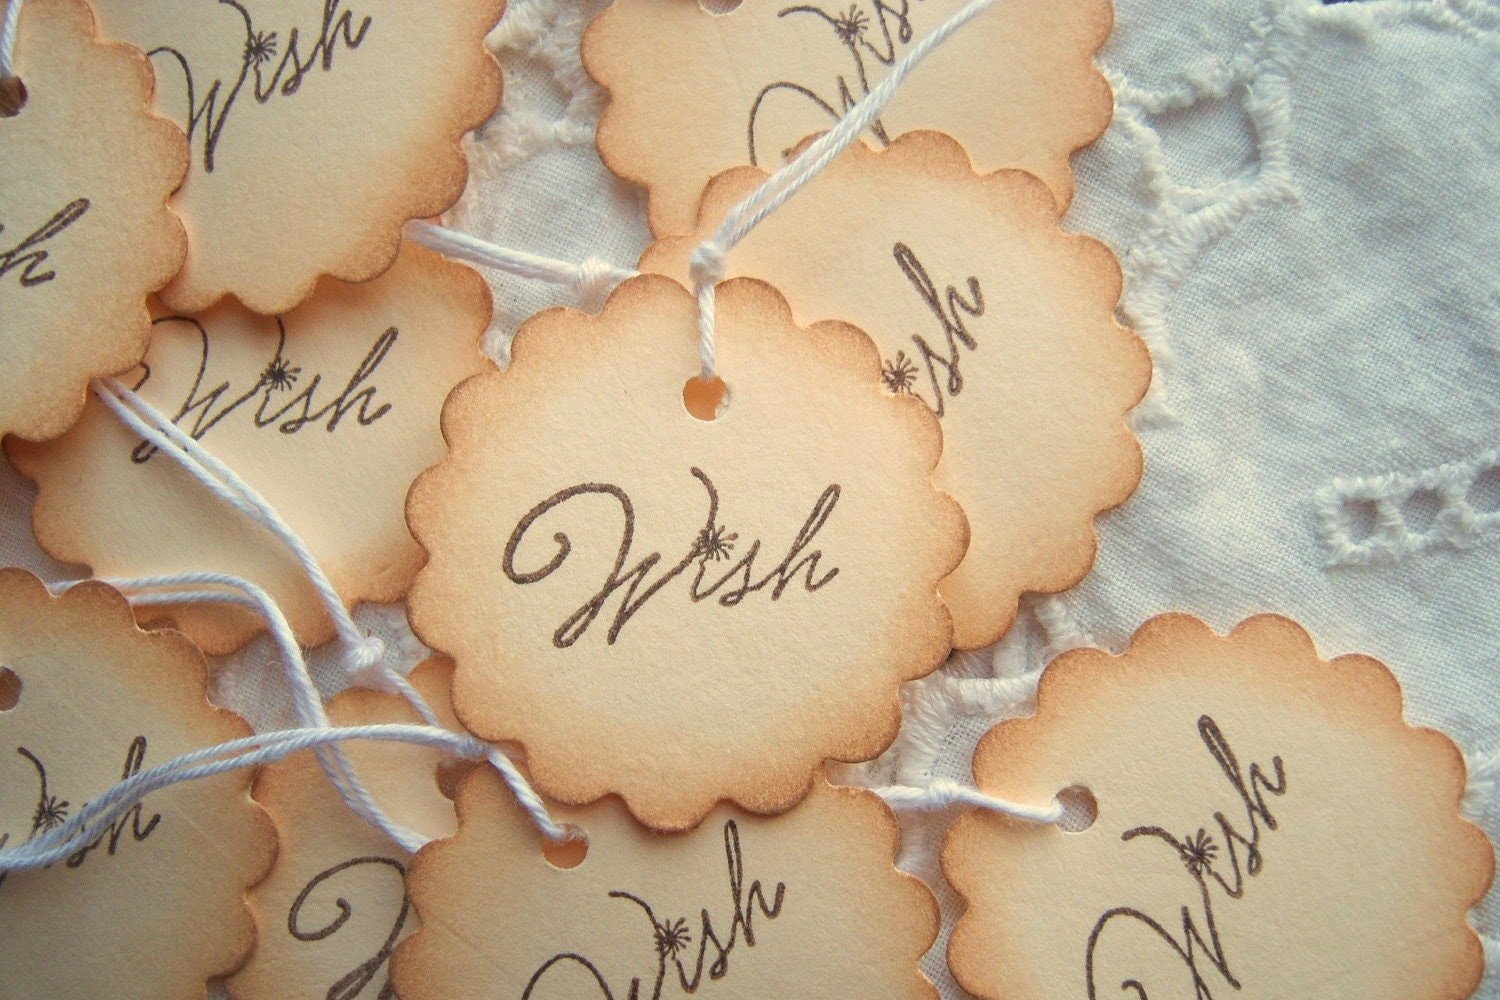 WISH Scalloped Circle Tags Hand Aged Vintage Inspired